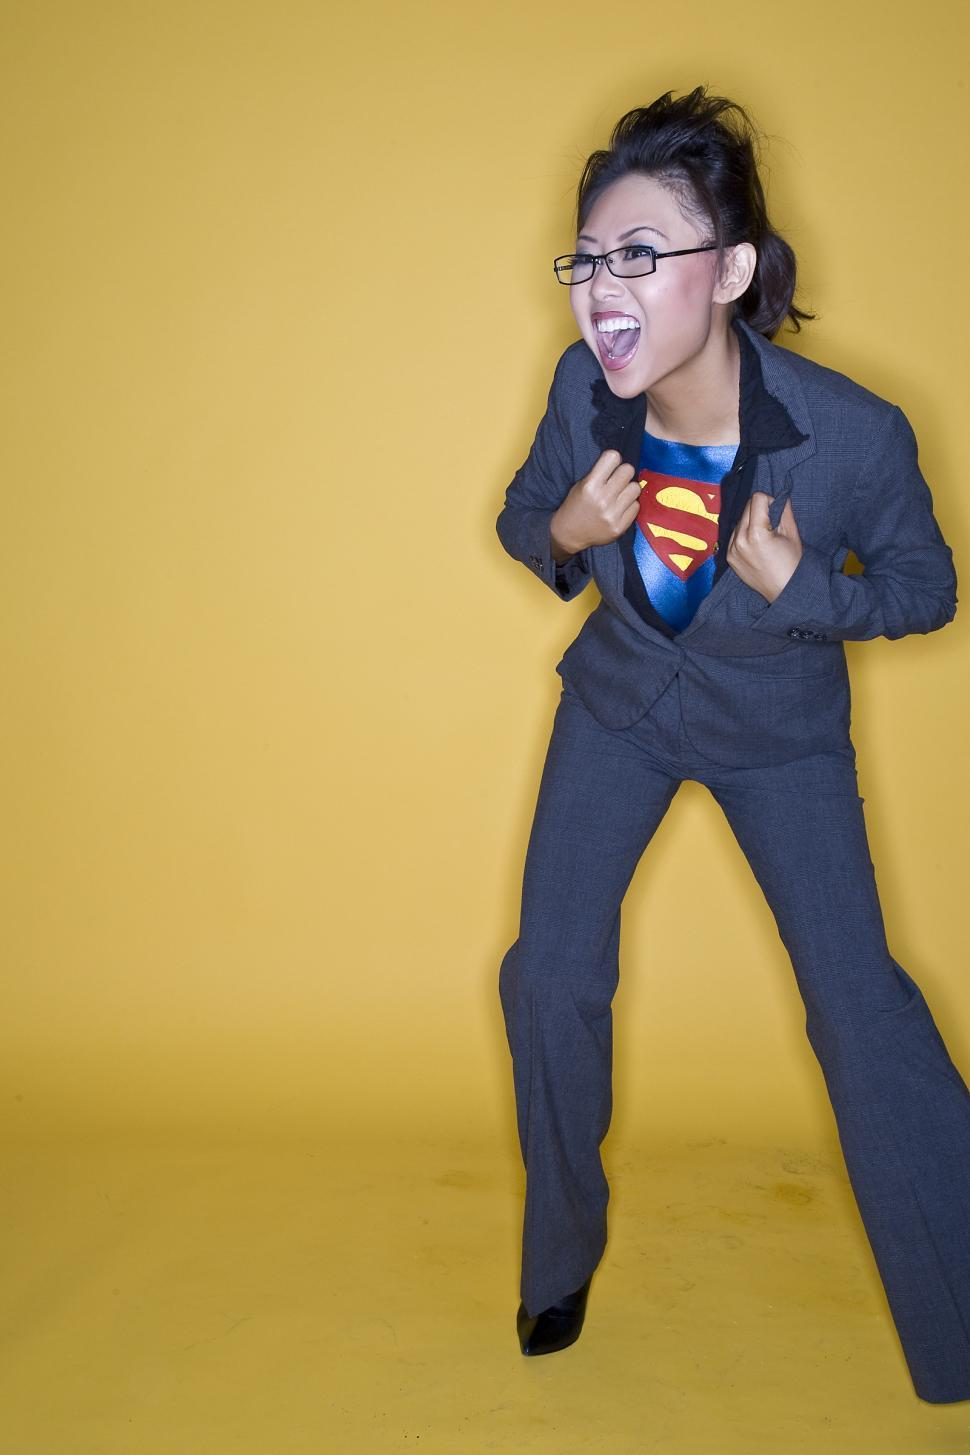 Download Free Stock Photo of Super Girl